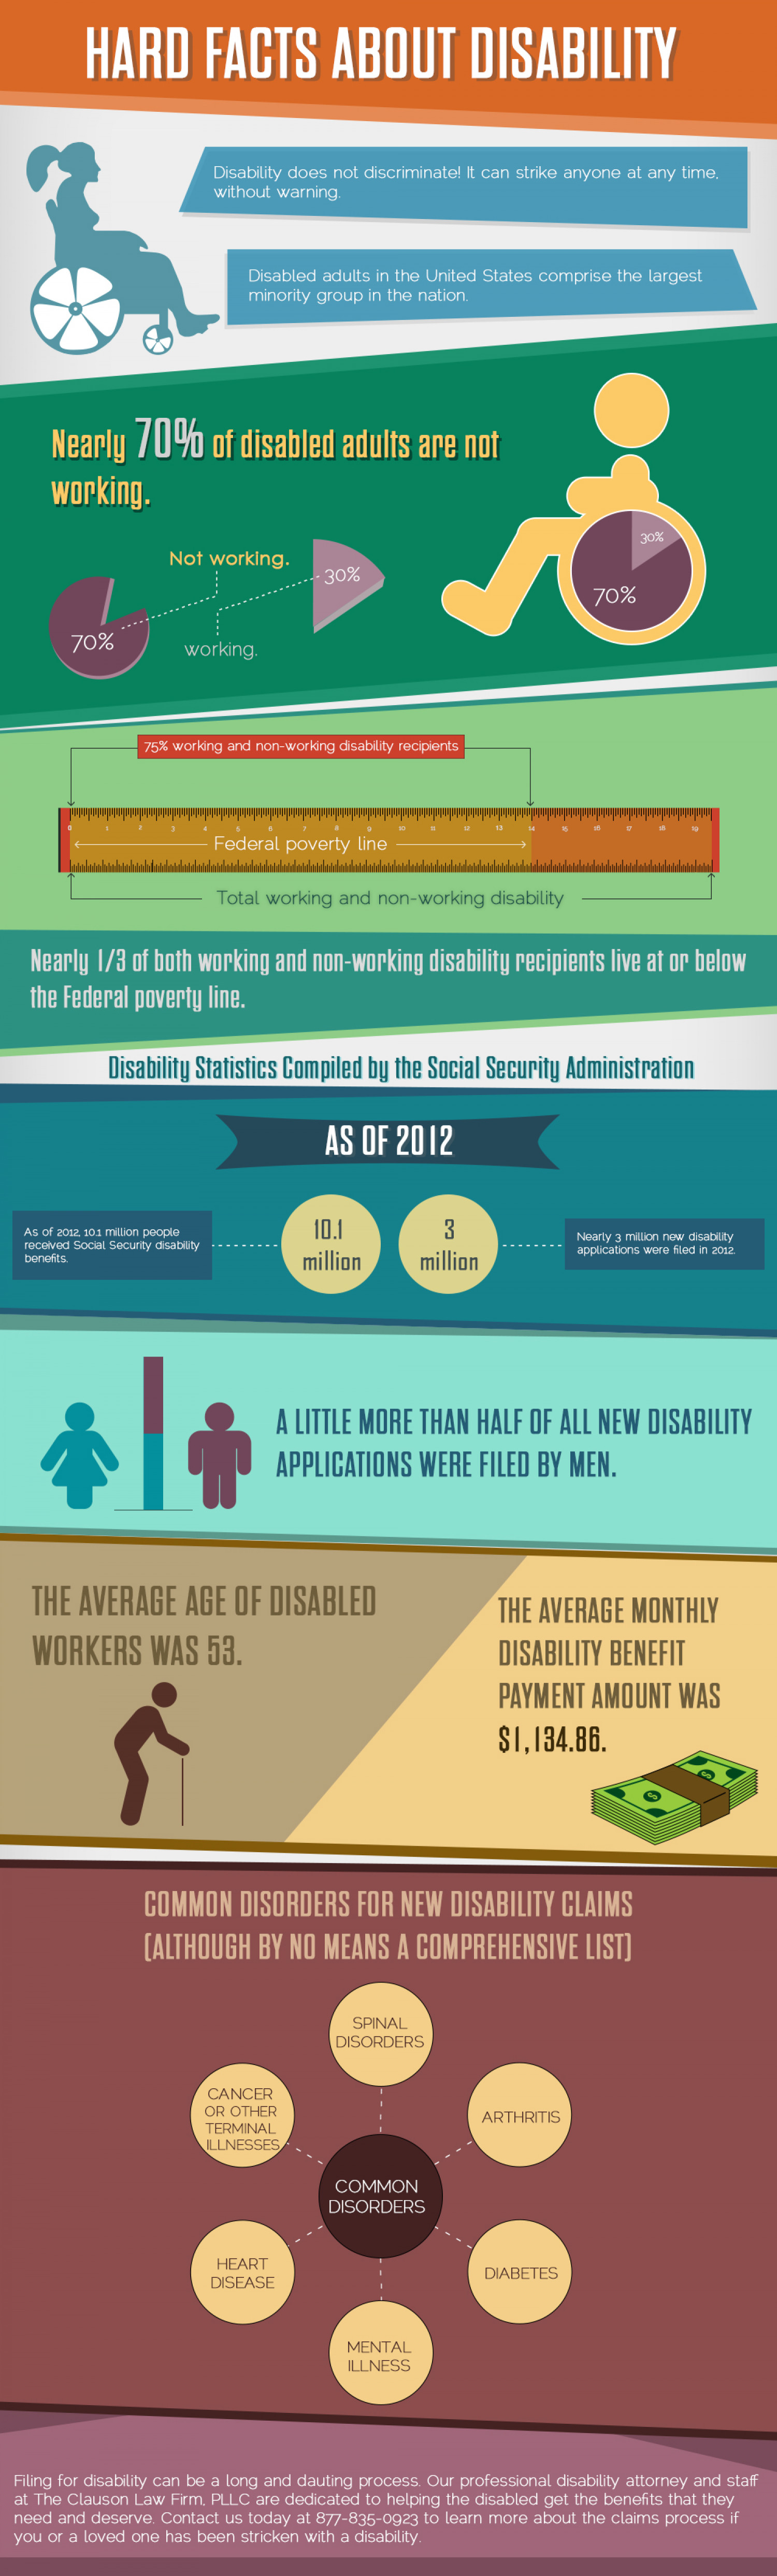 Hard Facts About Disability Infographic